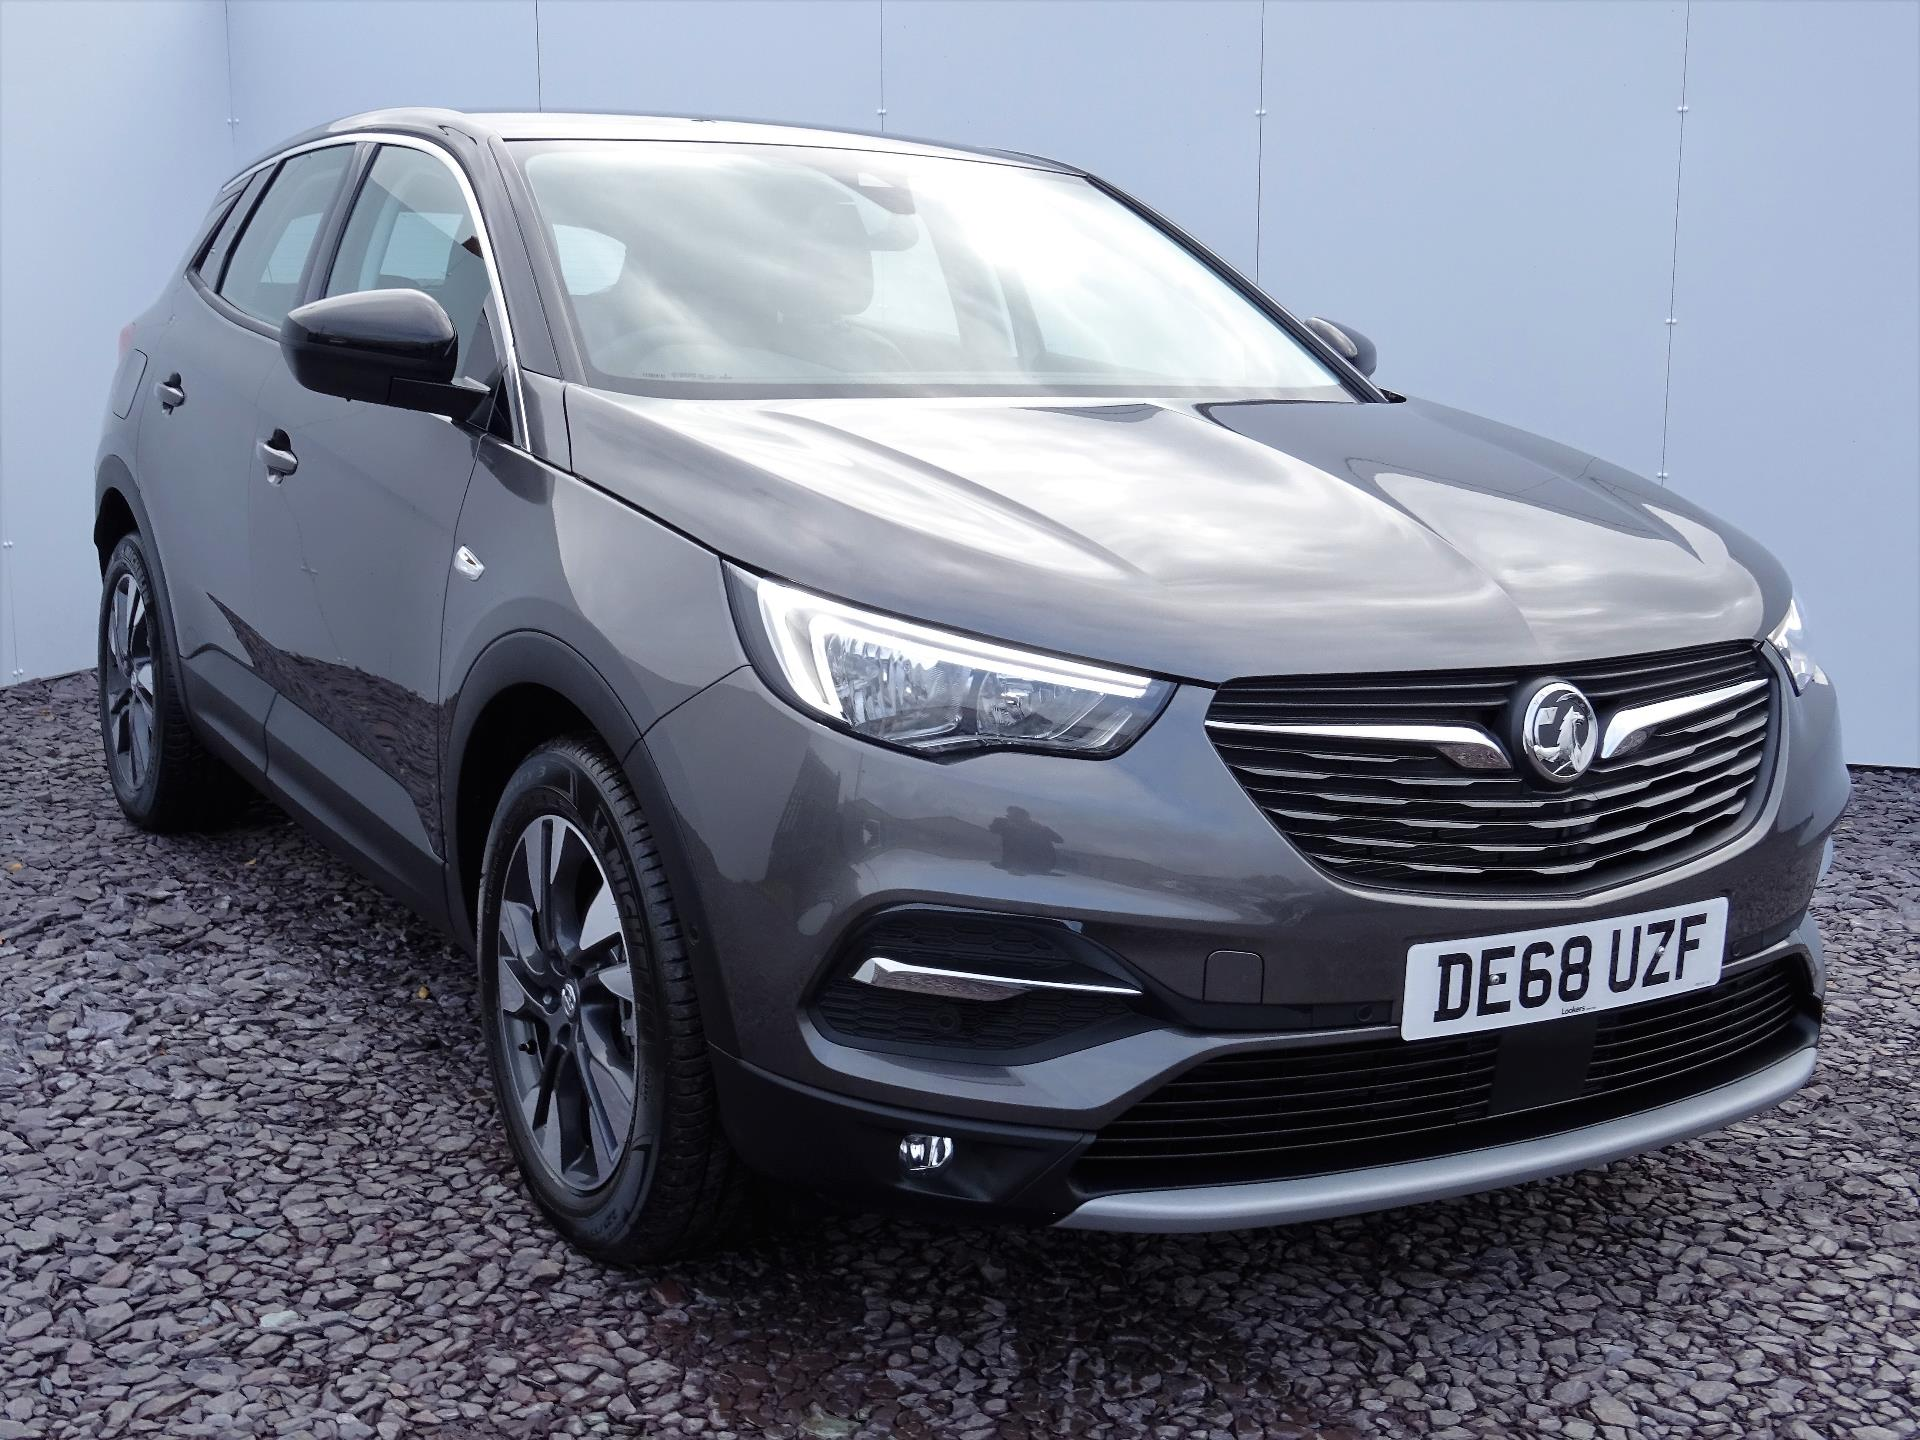 Large photo 1 for 2018/68 VAUXHALL GRANDLAND X/68 VAUXHALL GRANDLAND X 1.2T SPORT NAV 5DR**JUST 380 MILES**IMMEDIATE DELIVERY**(VXL)